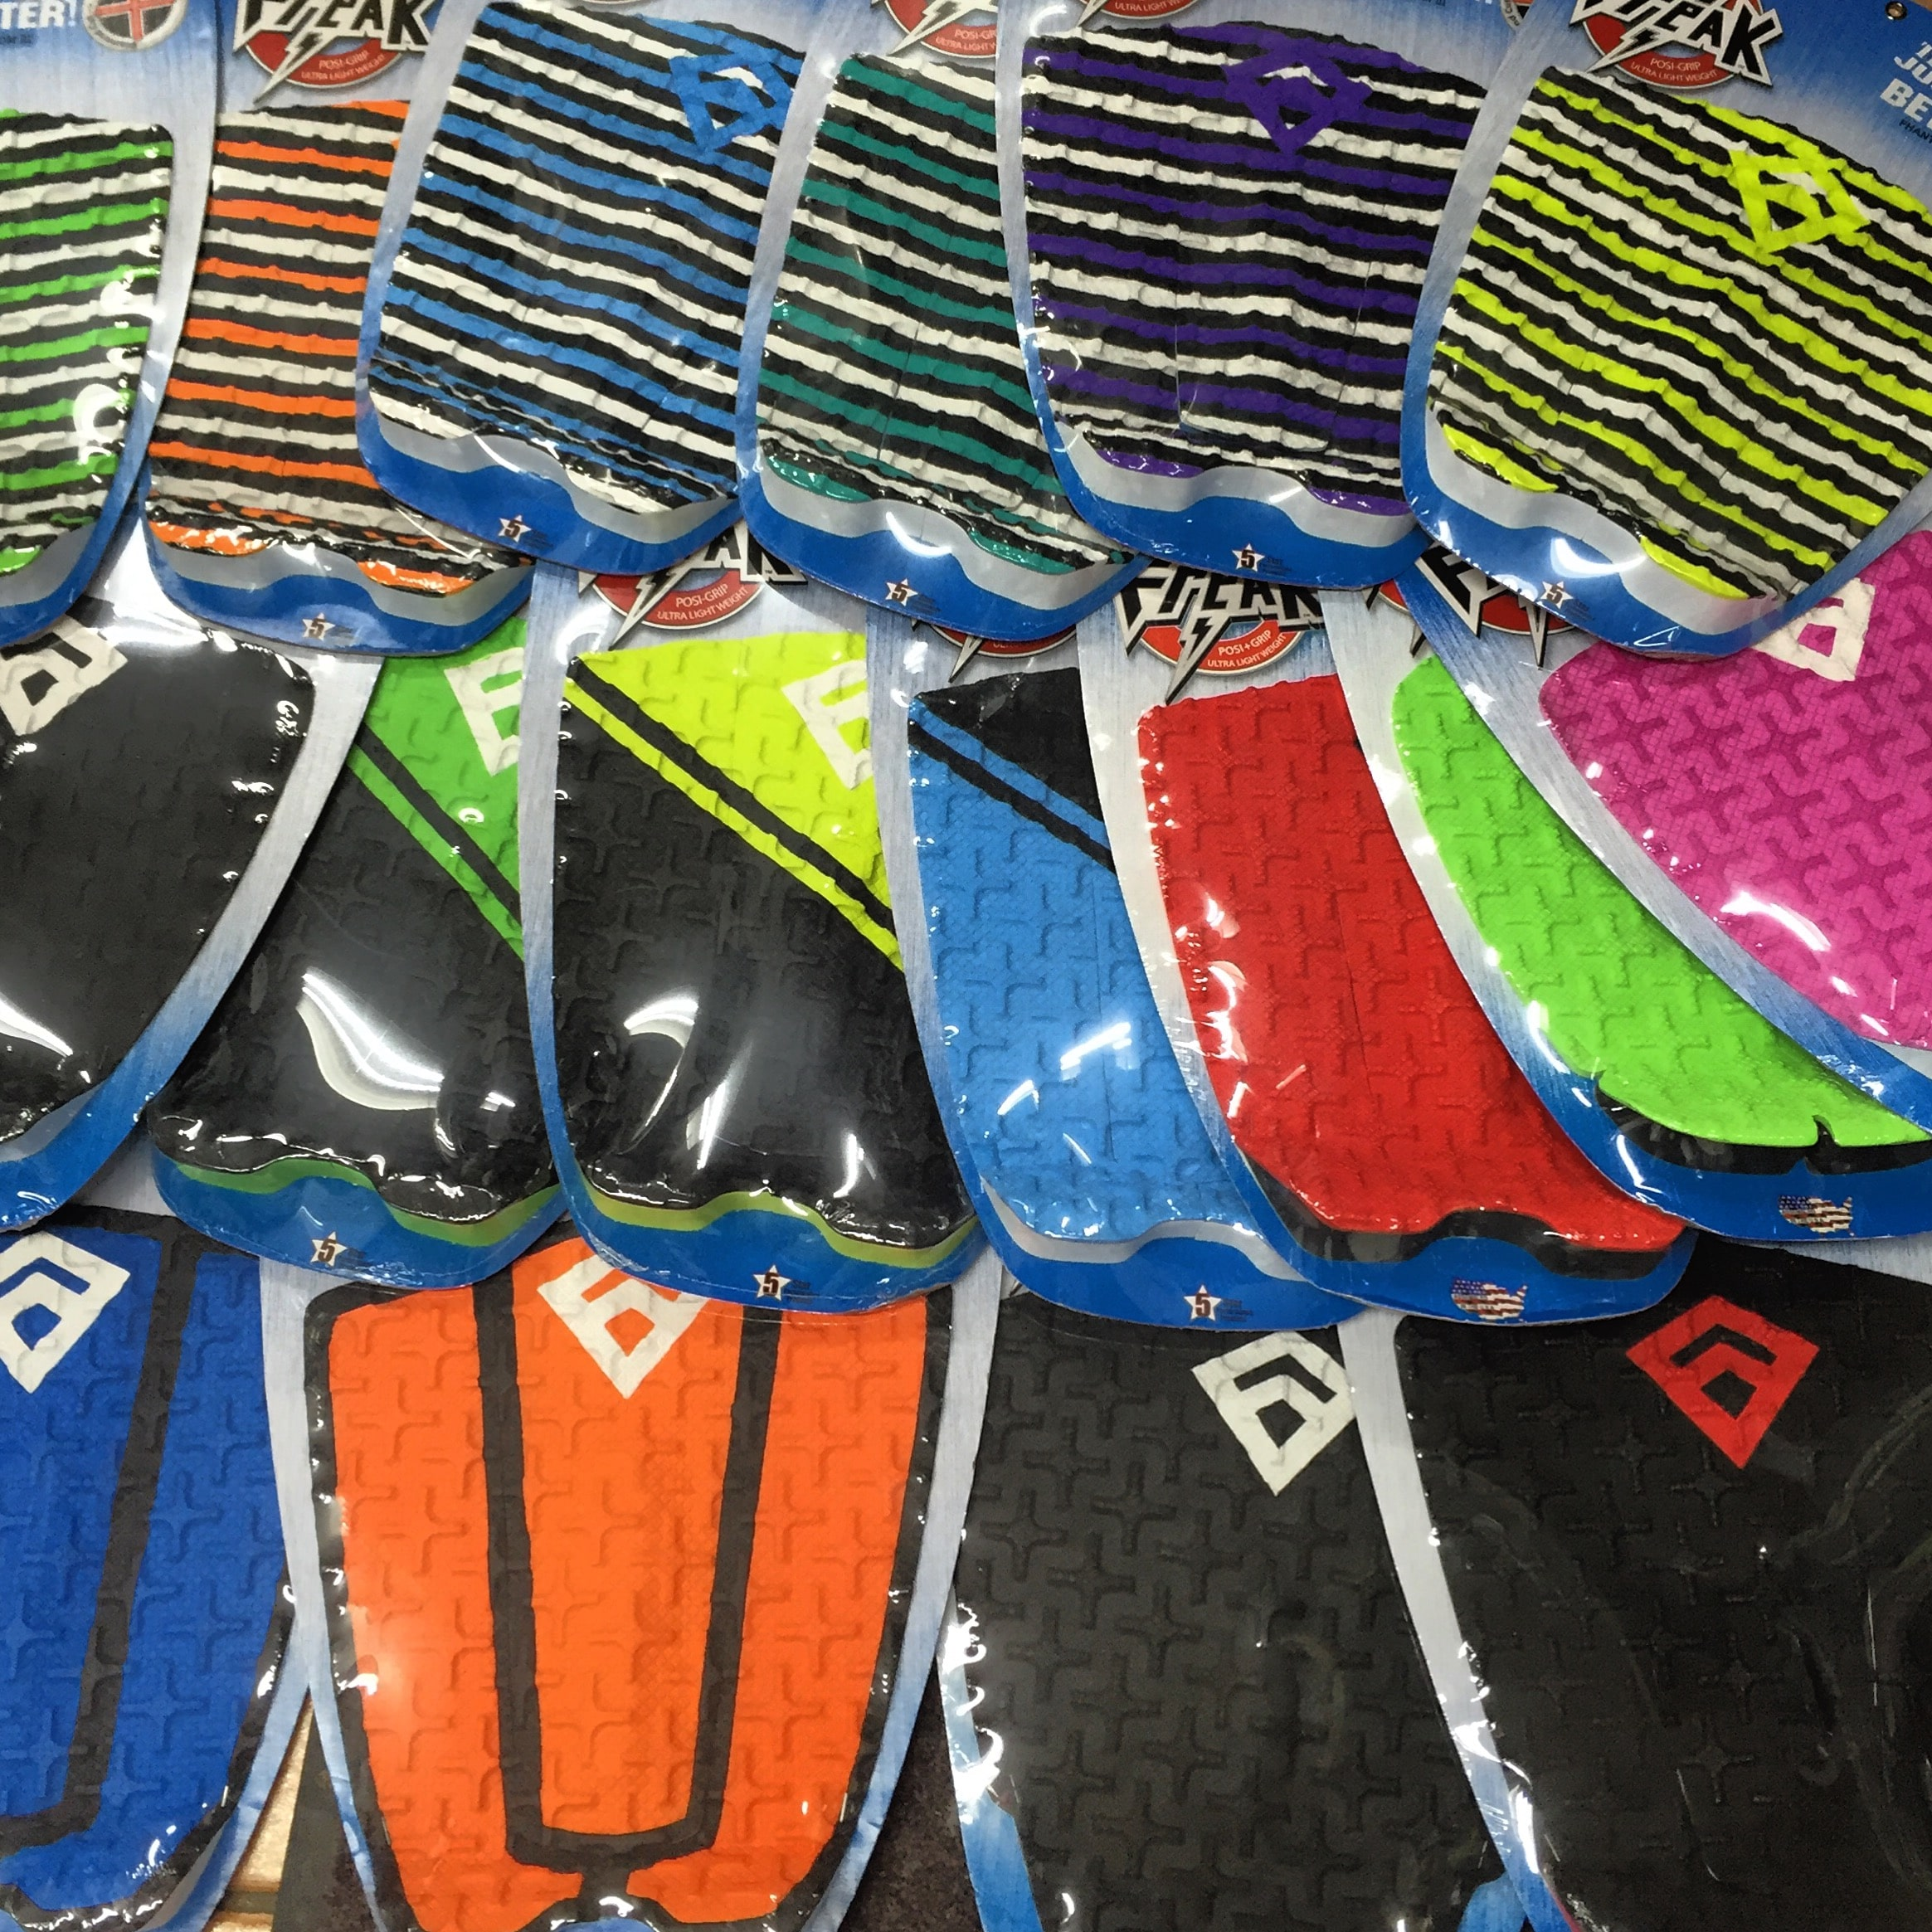 We just got in a fresh batch of Freak traction!